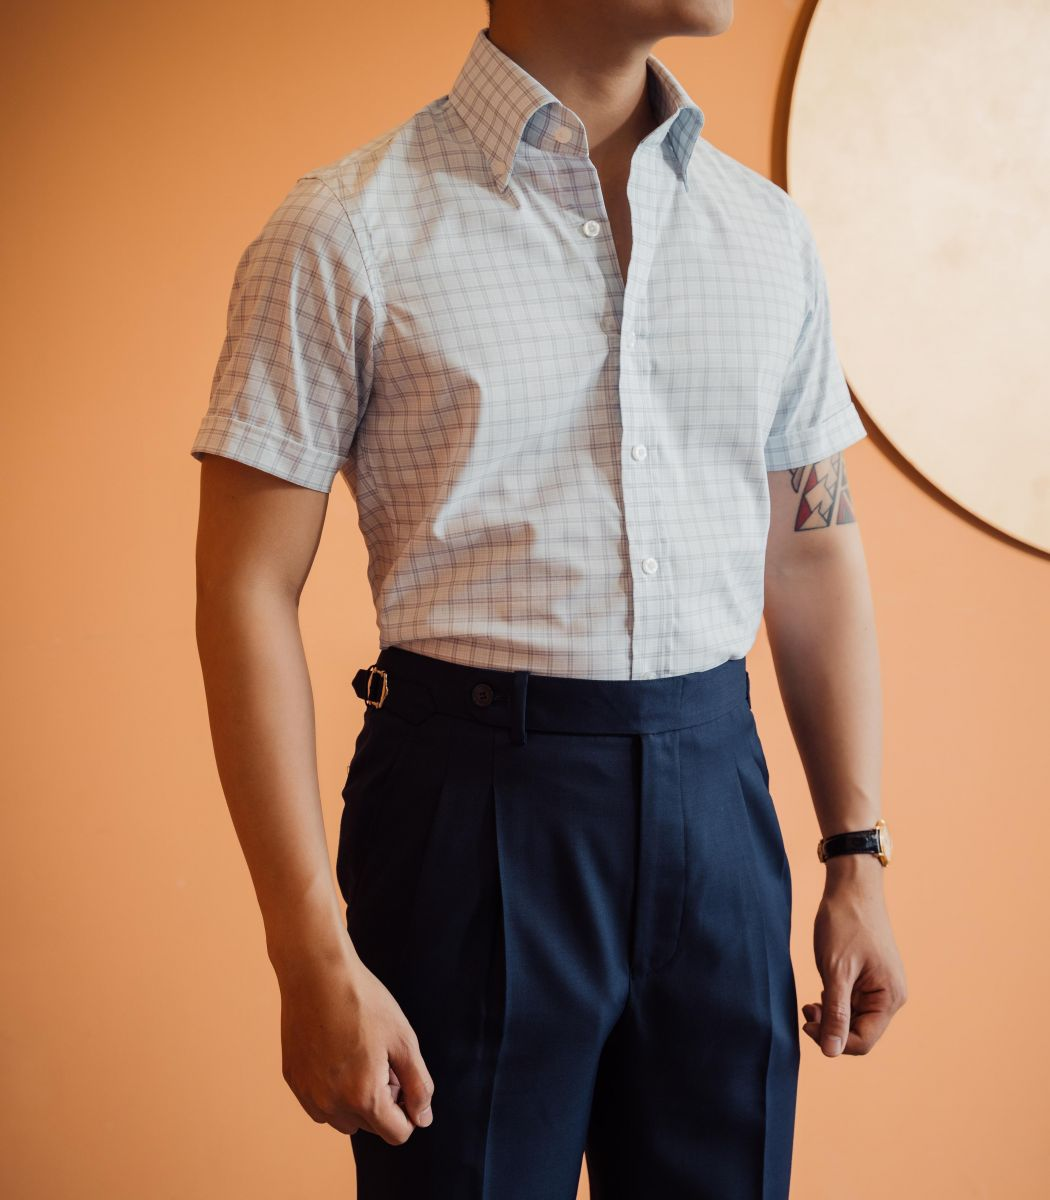 SQUARES LINES SUMMER OFFICE CUTAWAY COLLOR SHIRT